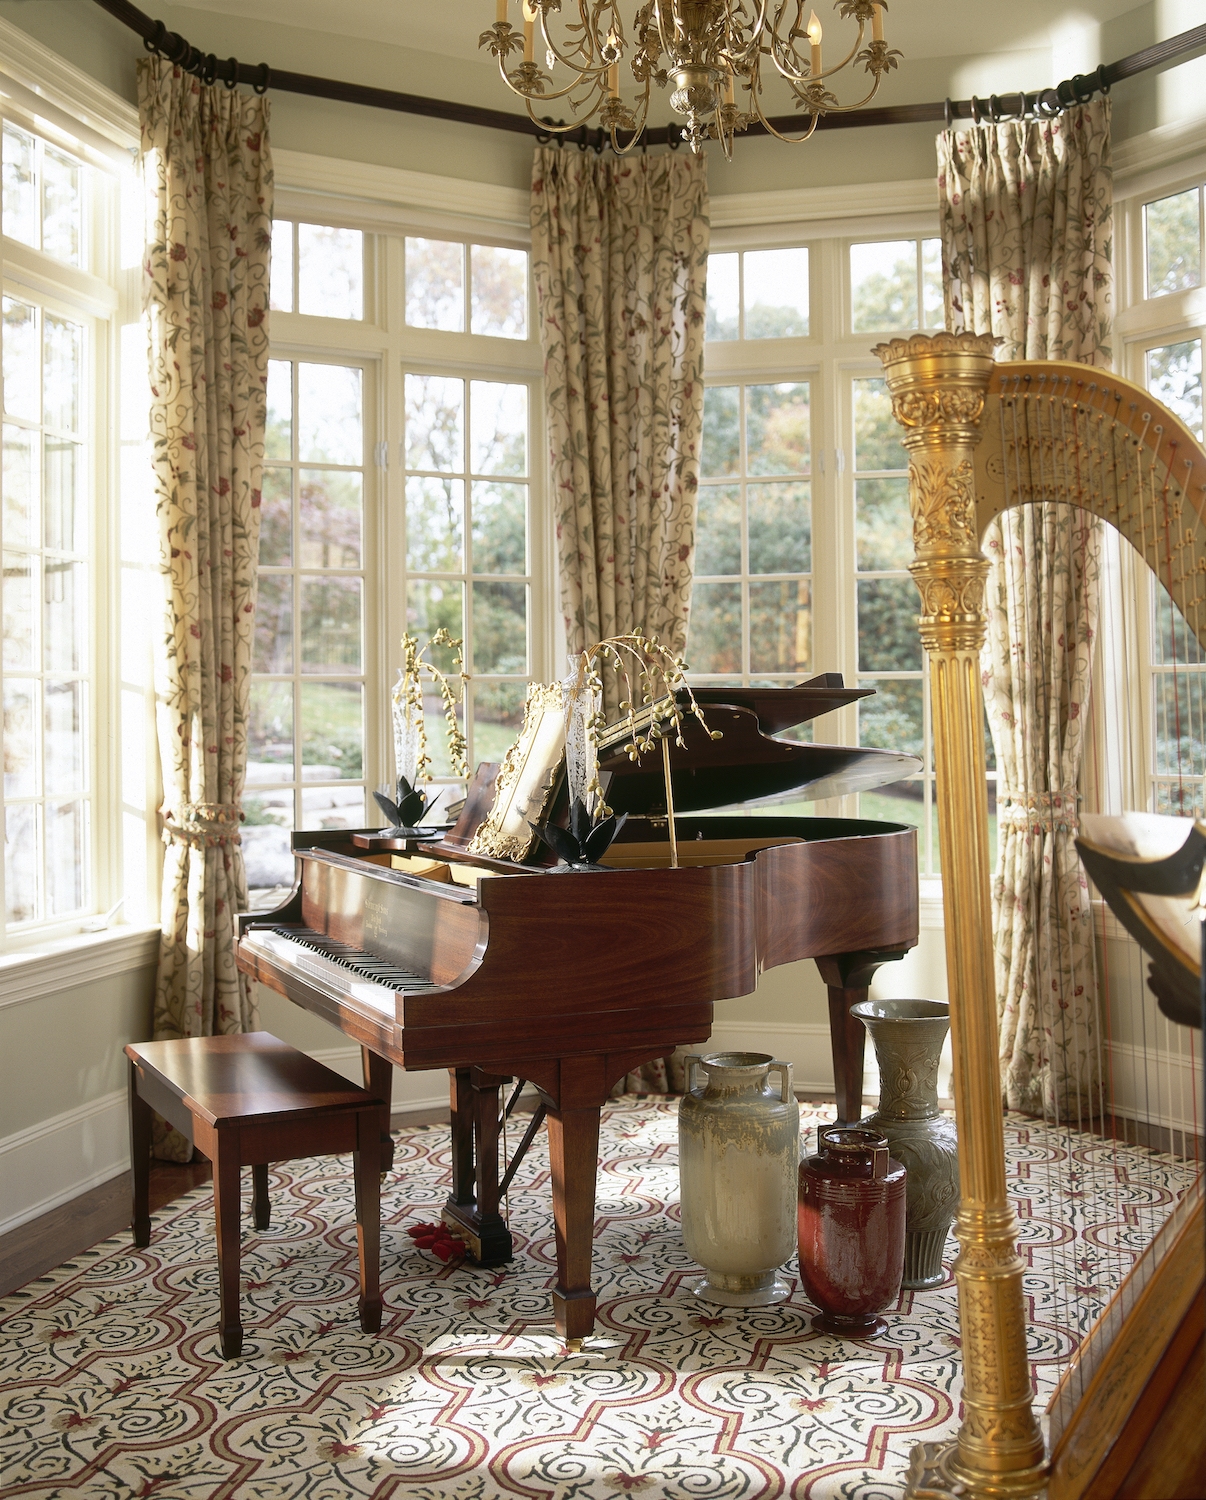 Music room. Westchester, New York. Interior design by Robin Baron Design. Photography by Phillip Ennis. From the book  Your Creative Haven  by Donald M. Rattner (Skyhorse Publishing, 2019).